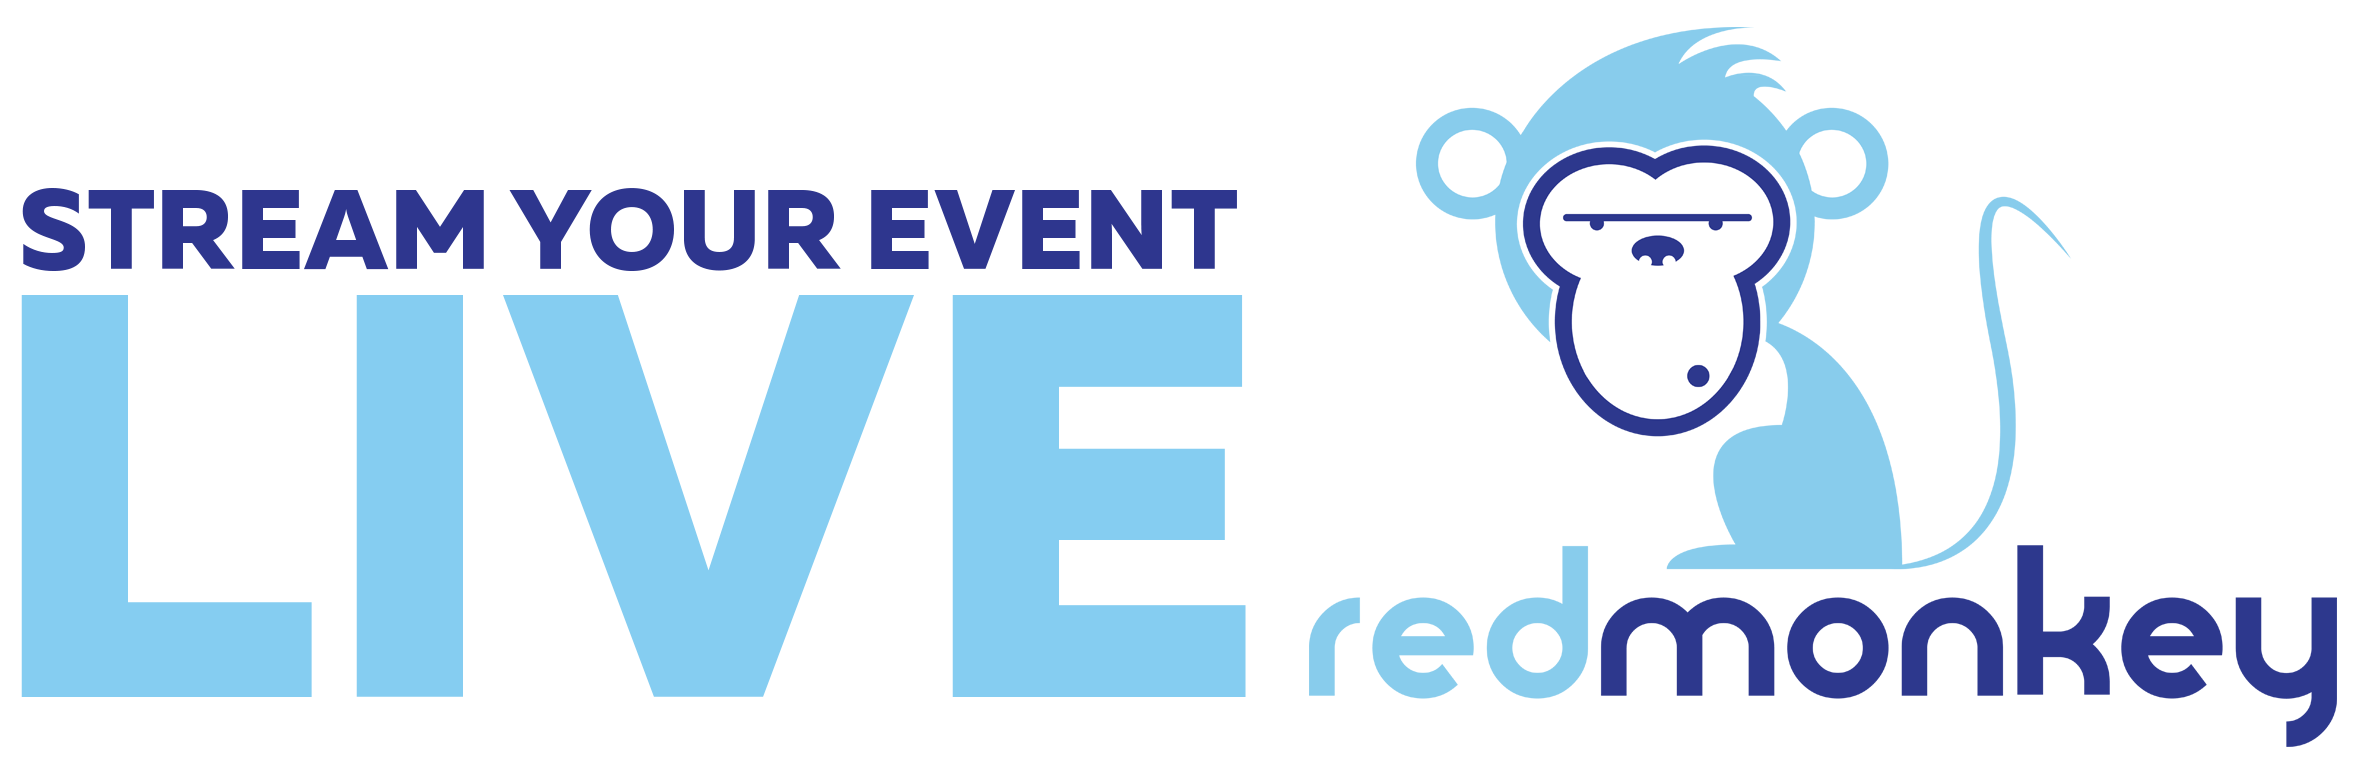 Stream Your Event Live Red Monkey - Logo.png